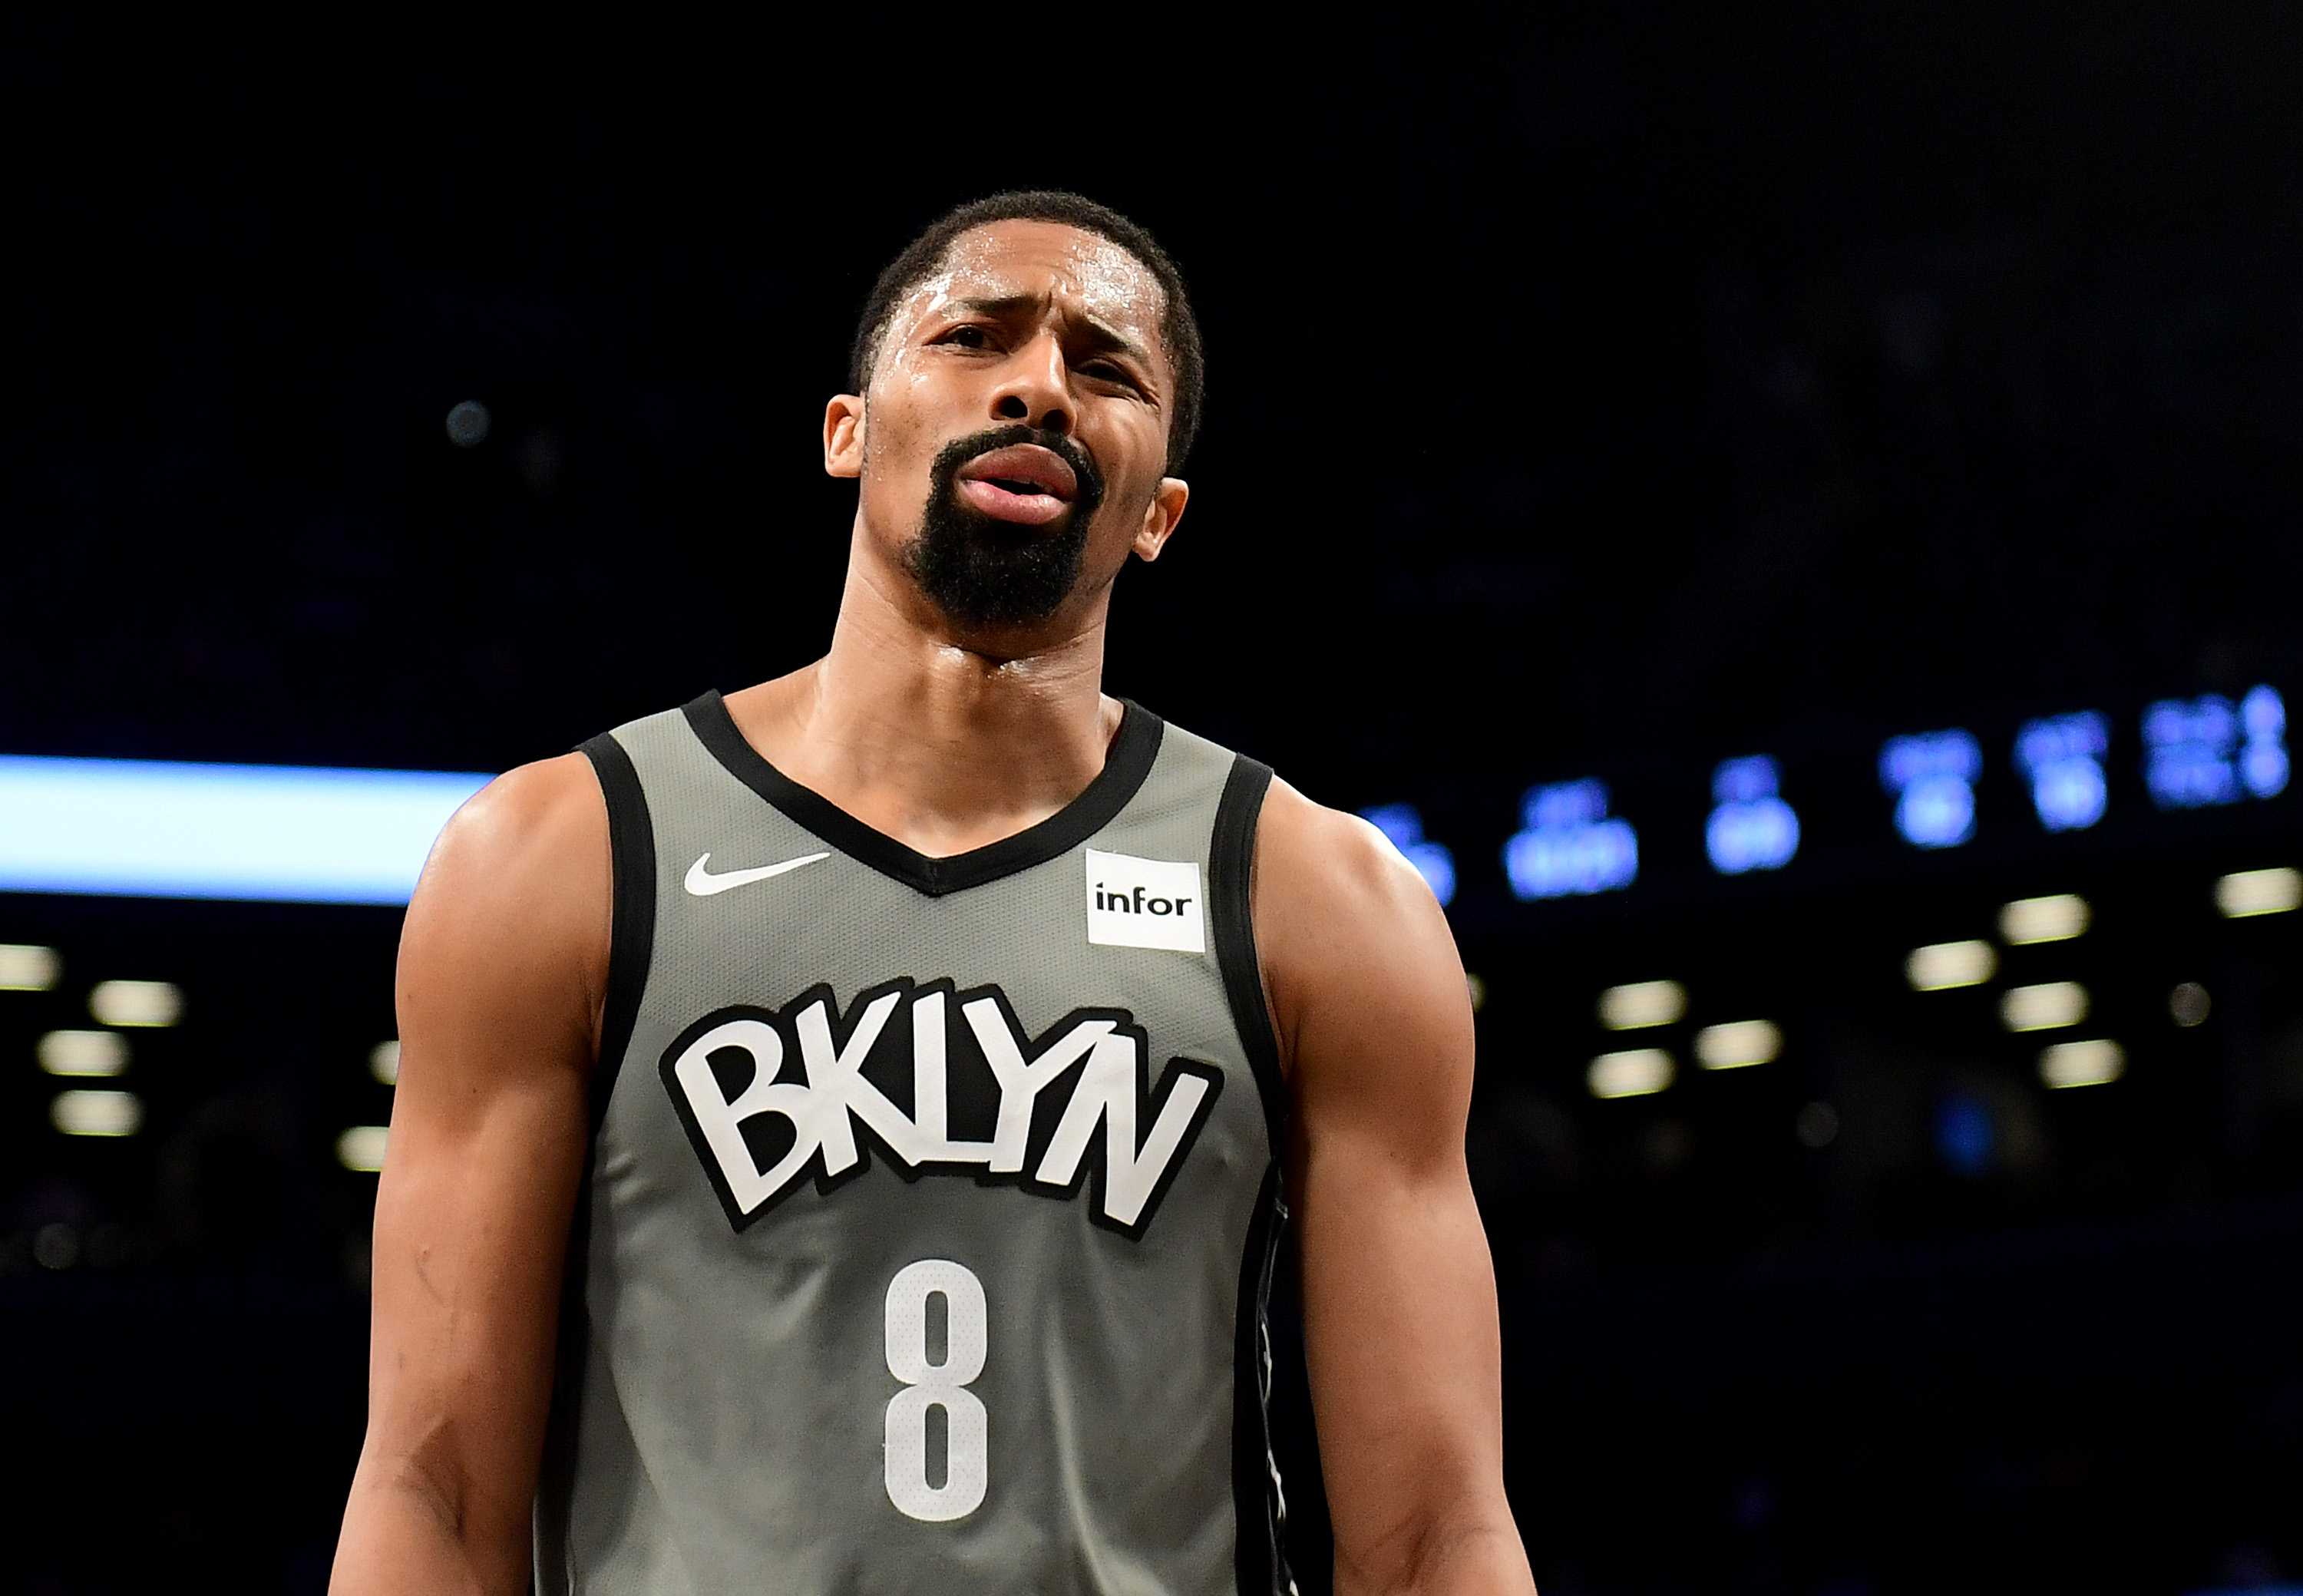 Spencer Dinwiddie #8 of the Brooklyn Nets reacts during the first half against the Indiana Pacers at Barclays Center on November 18, 2019 in the Brooklyn borough of New York City. (Photo by Emilee Chinn/Getty Images)